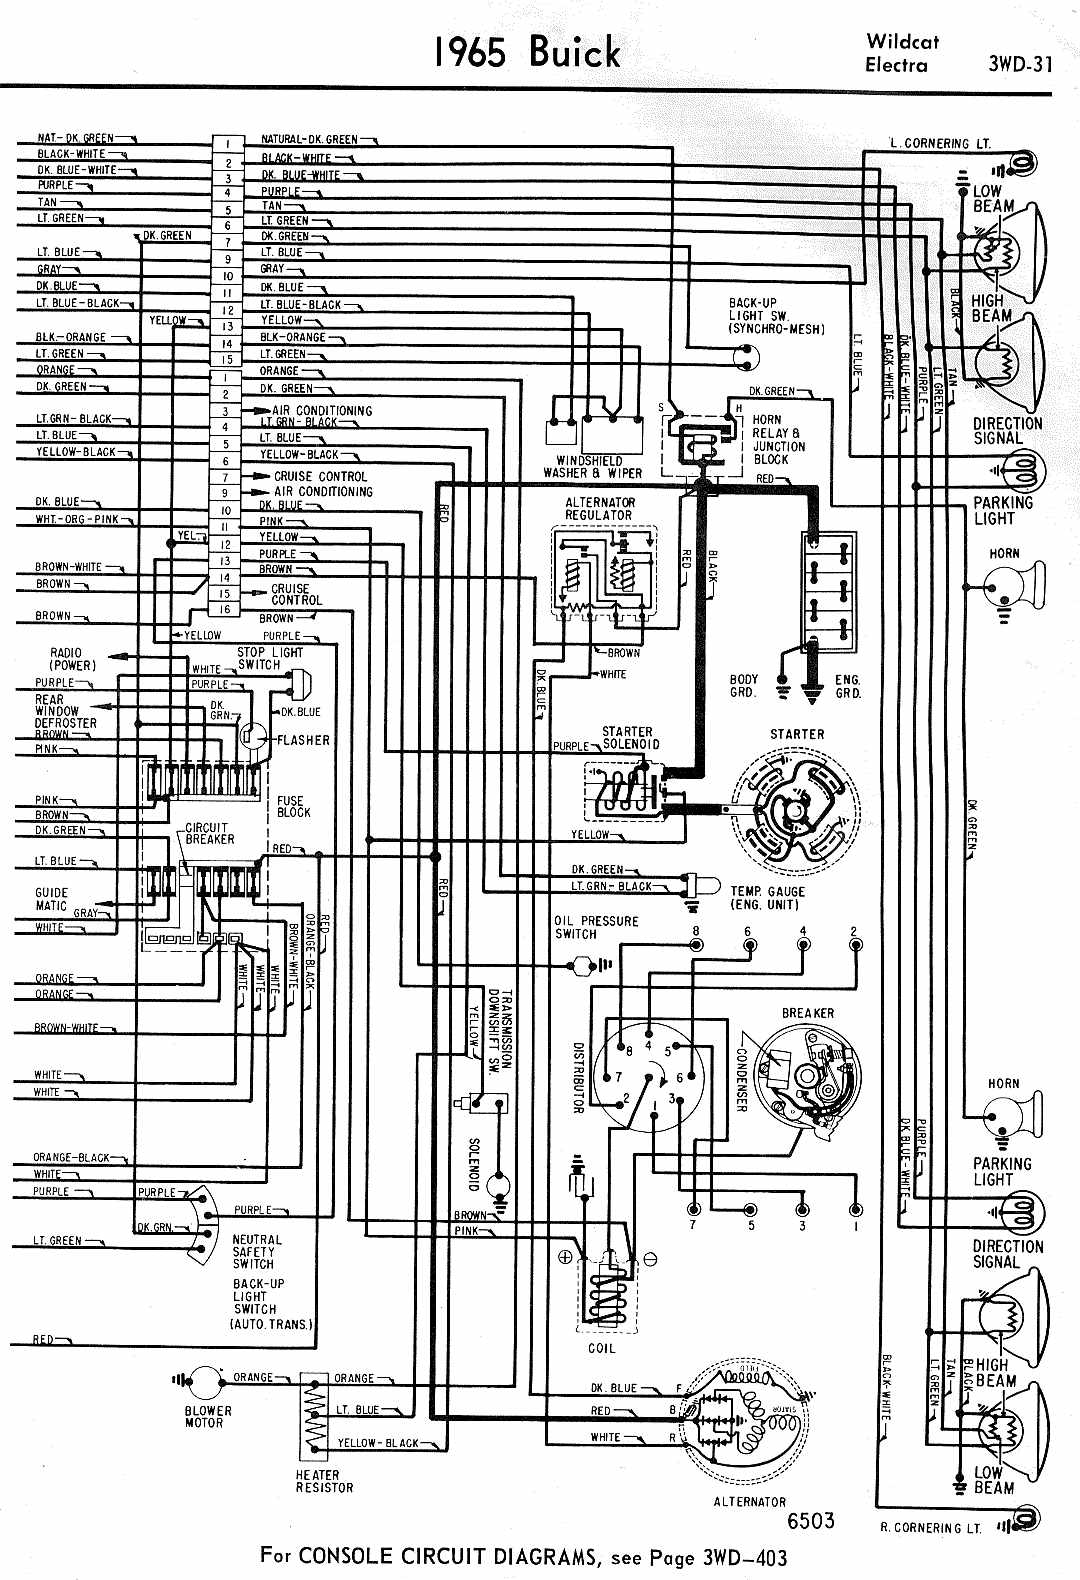 Gm A Wiring Diagram further Wire Harness Diagram 2000 Buick Lesabre in addition 1990 Pontiac Transport Wiring Diagrams as well 95 Pontiac Grand Prix Wiring Diagram additionally Trailer Wiring Diagram Printable. on p 0900c152800680c1